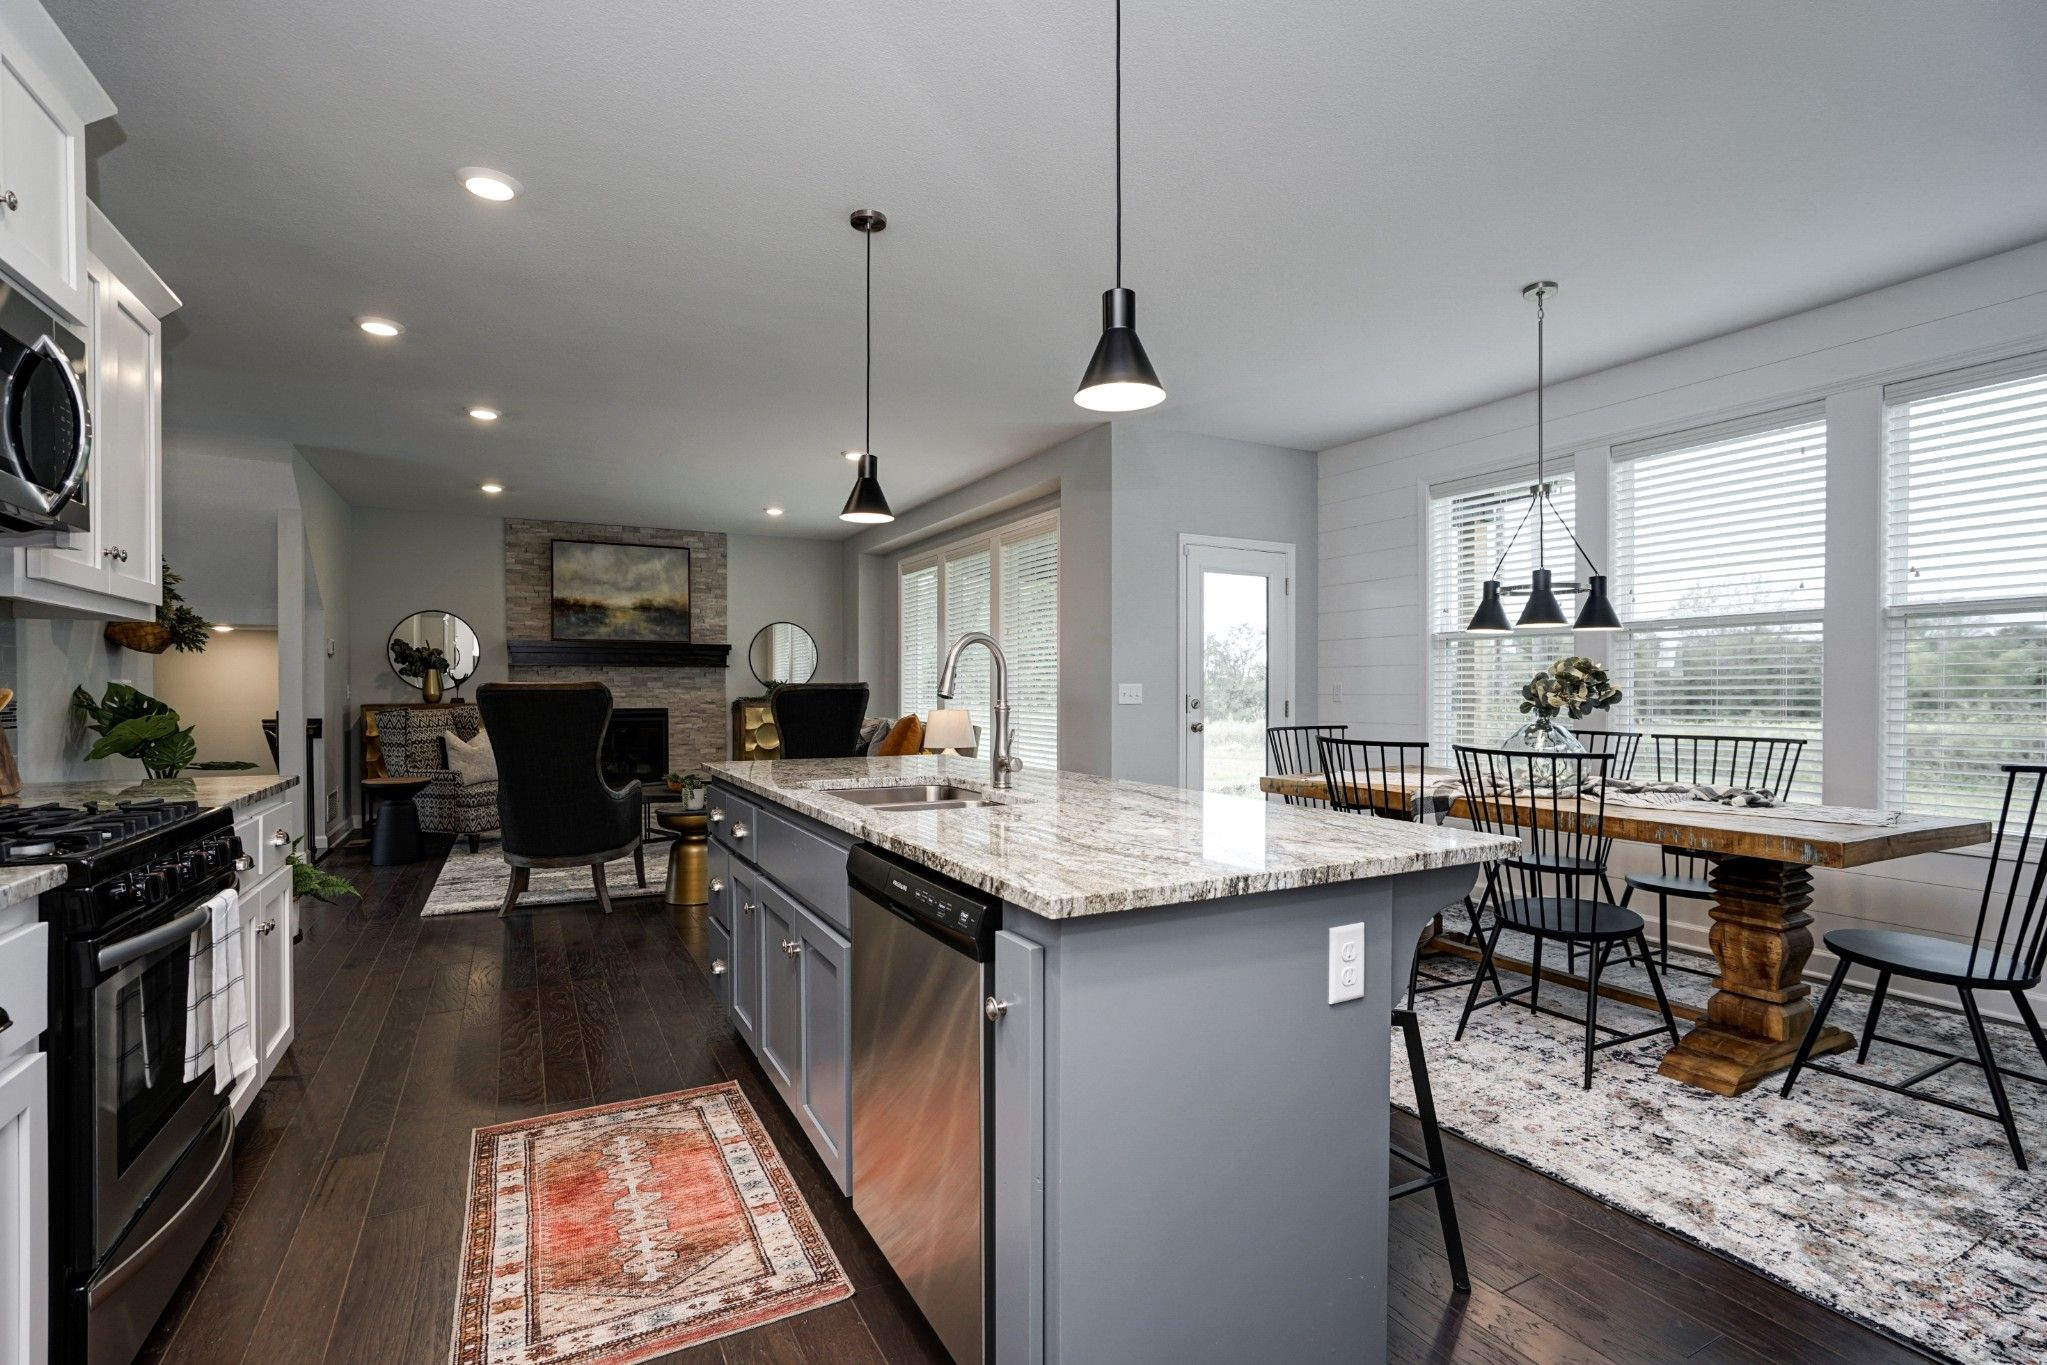 Kitchen featured in the Palmer - IA By Summit Homes in Des Moines, IA